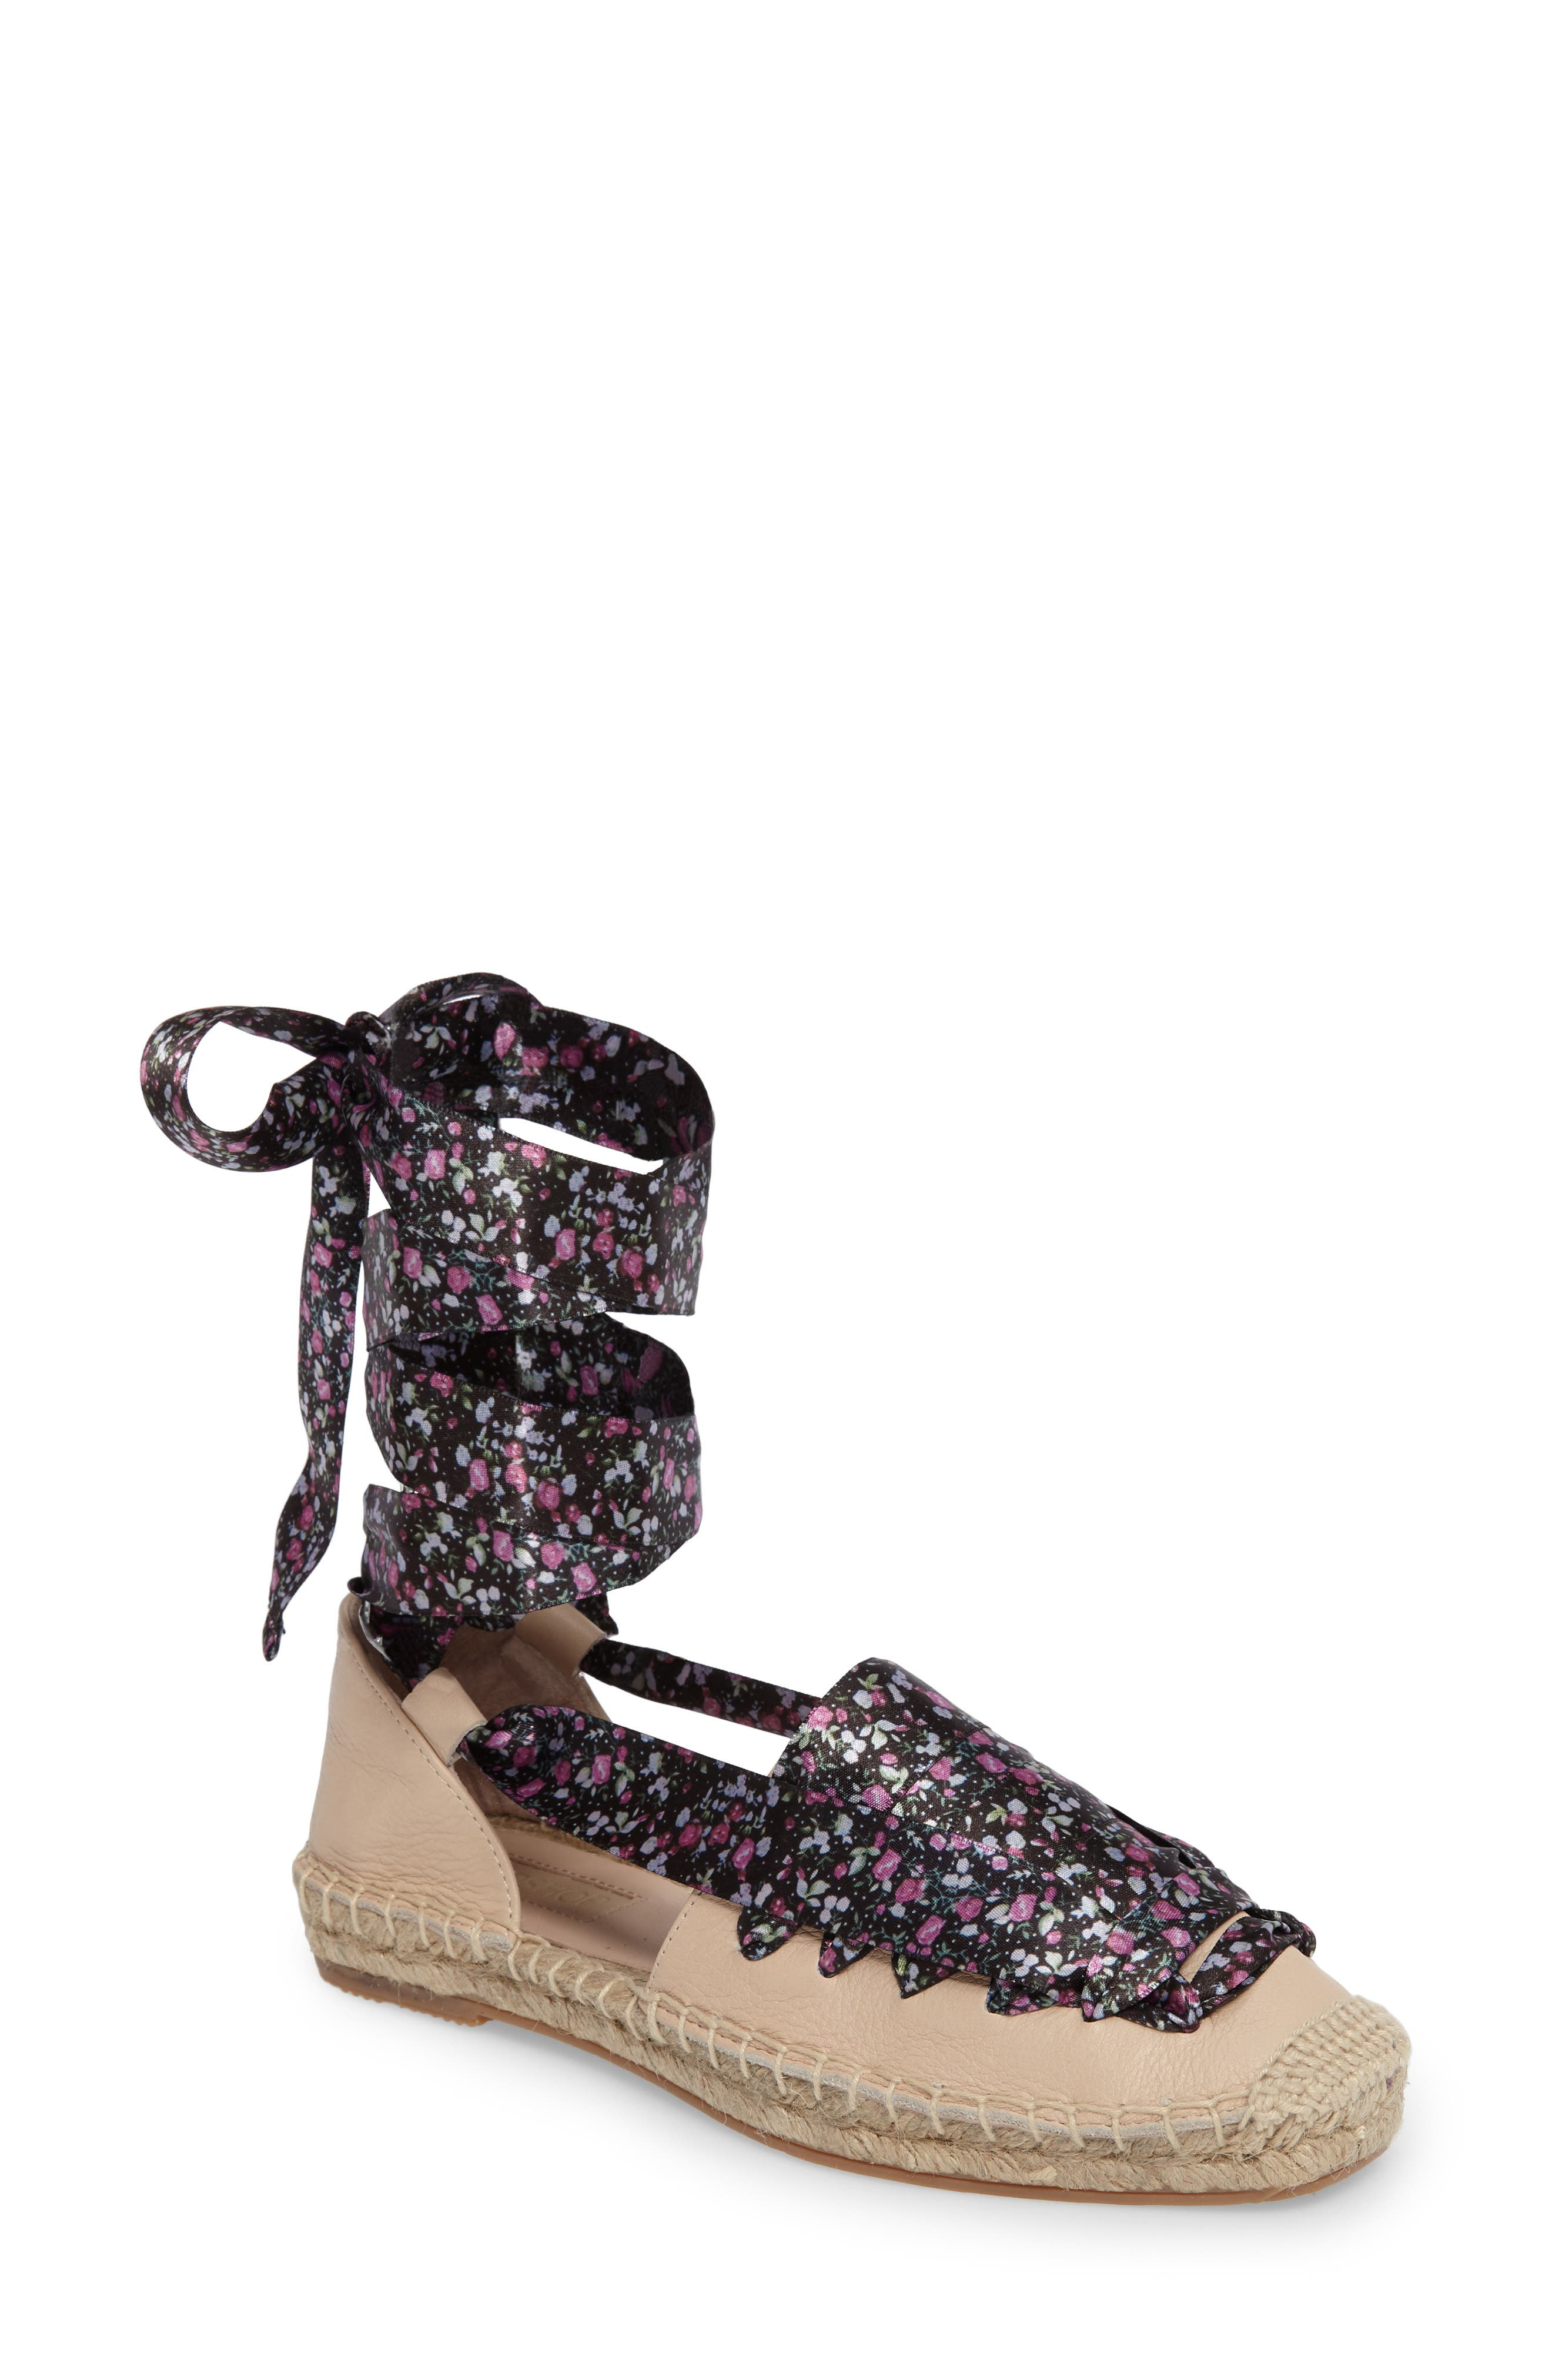 Alternate Image 1 Selected - Topshop King Ankle Tie Espadrille (Women)